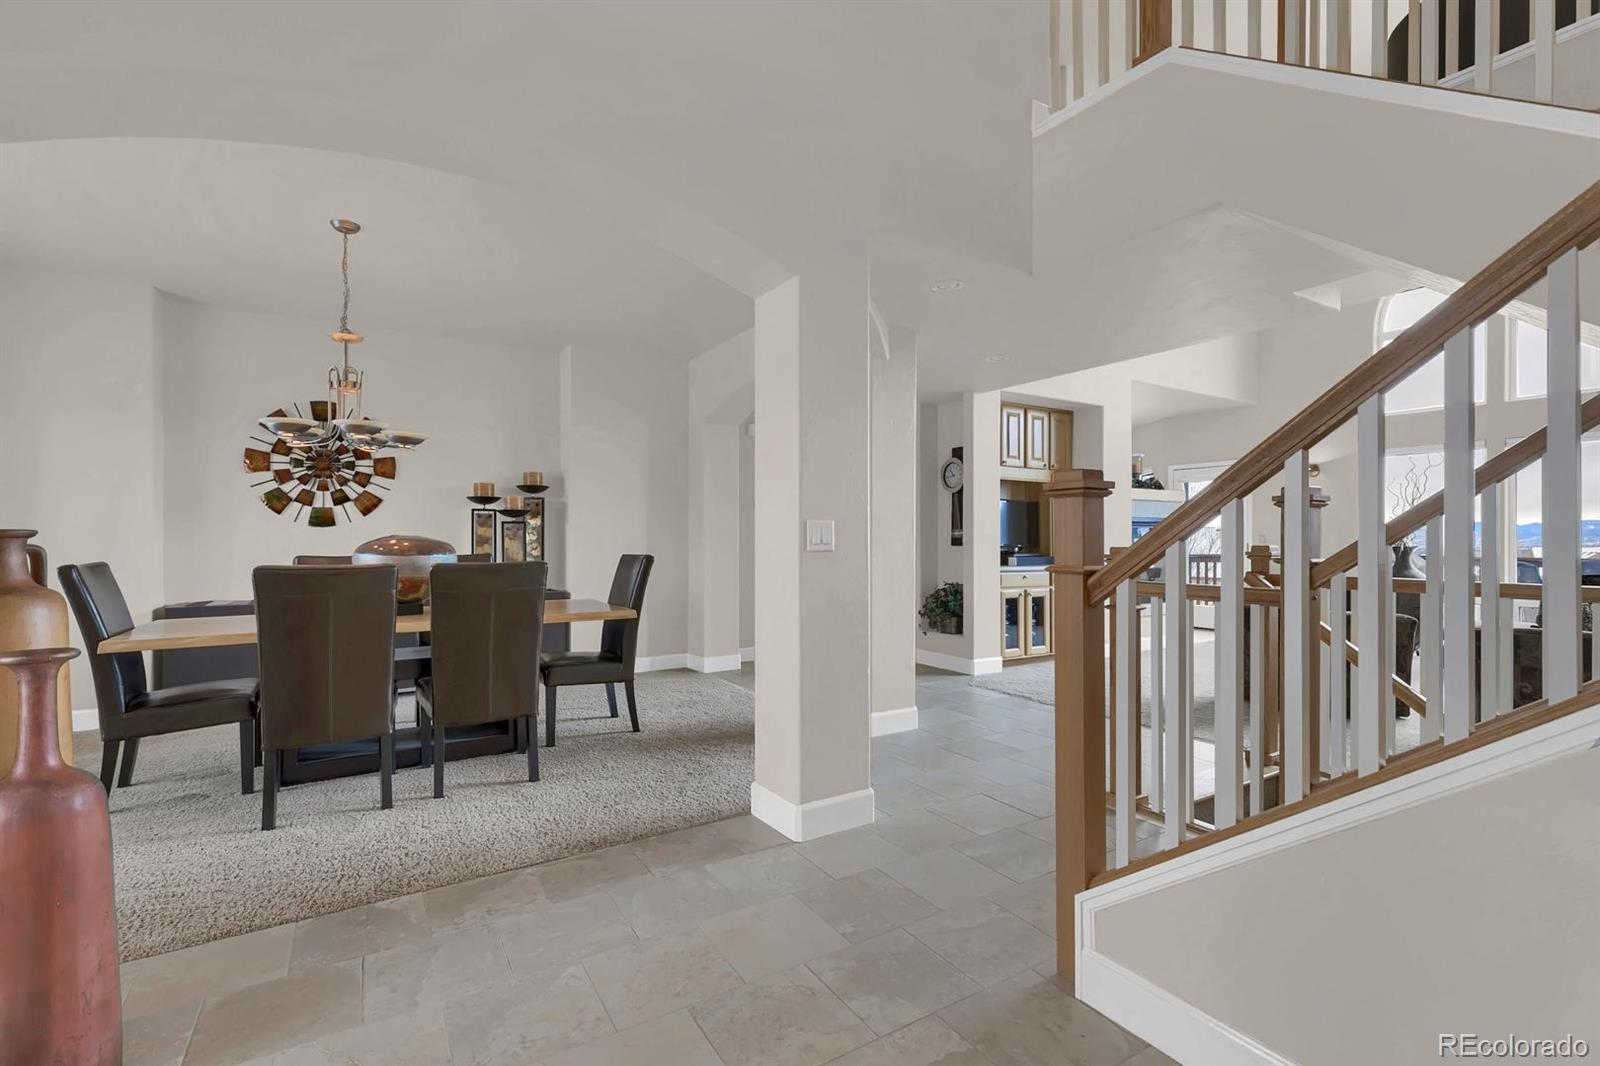 MLS# 5159811 - 4 - 207 Green Rock Place, Monument, CO 80132